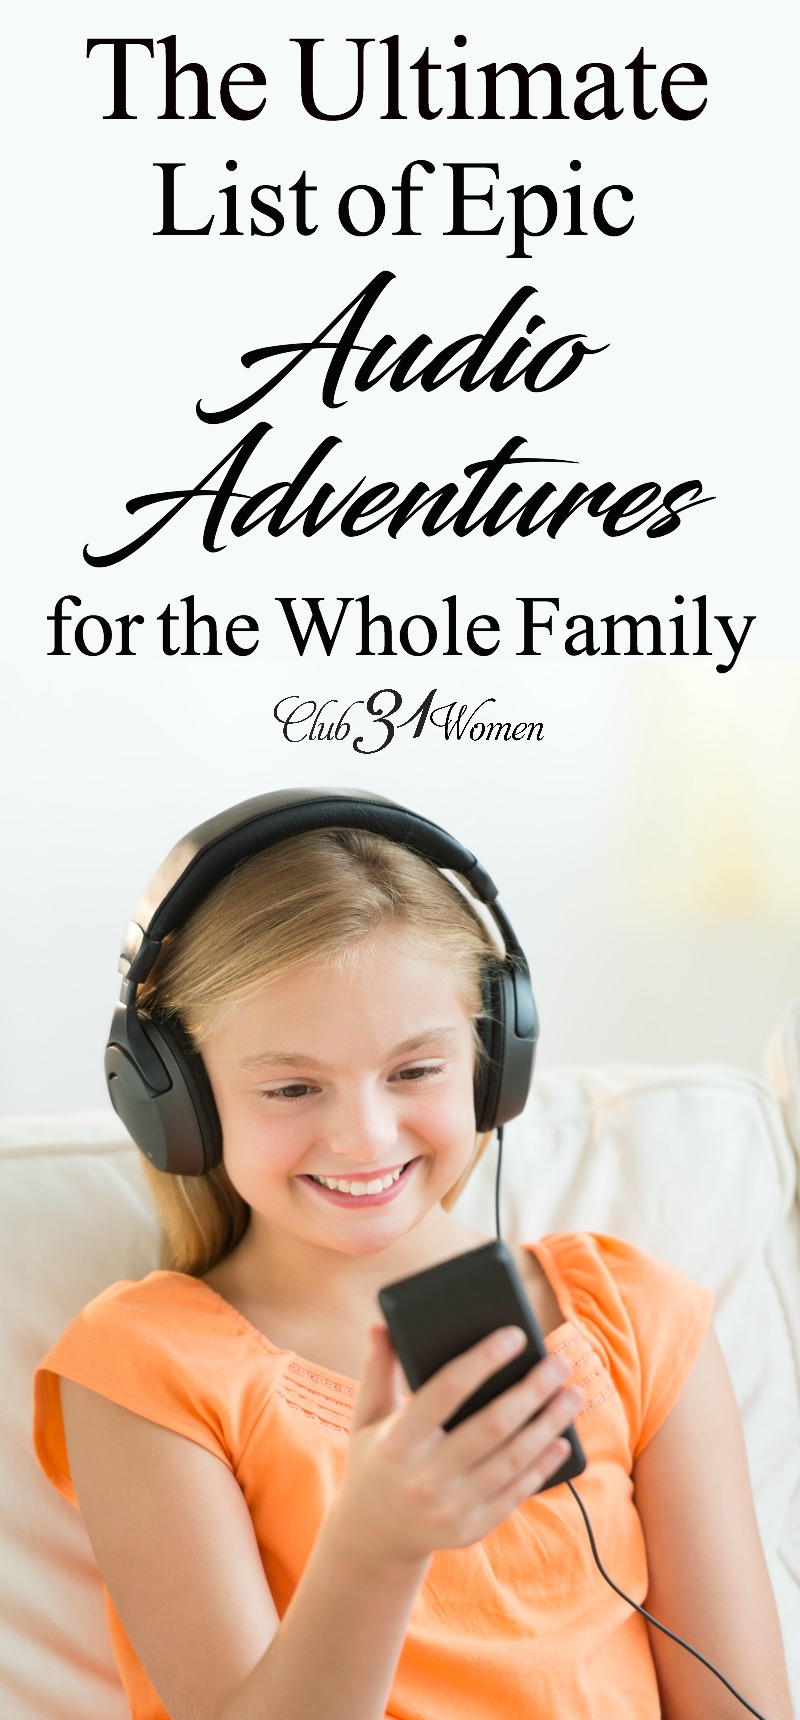 If reading aloud is a challenge, why not consider audiobooks? Here is an ultimate list of amazing audio adventures the whole family will love! via @Club31Women